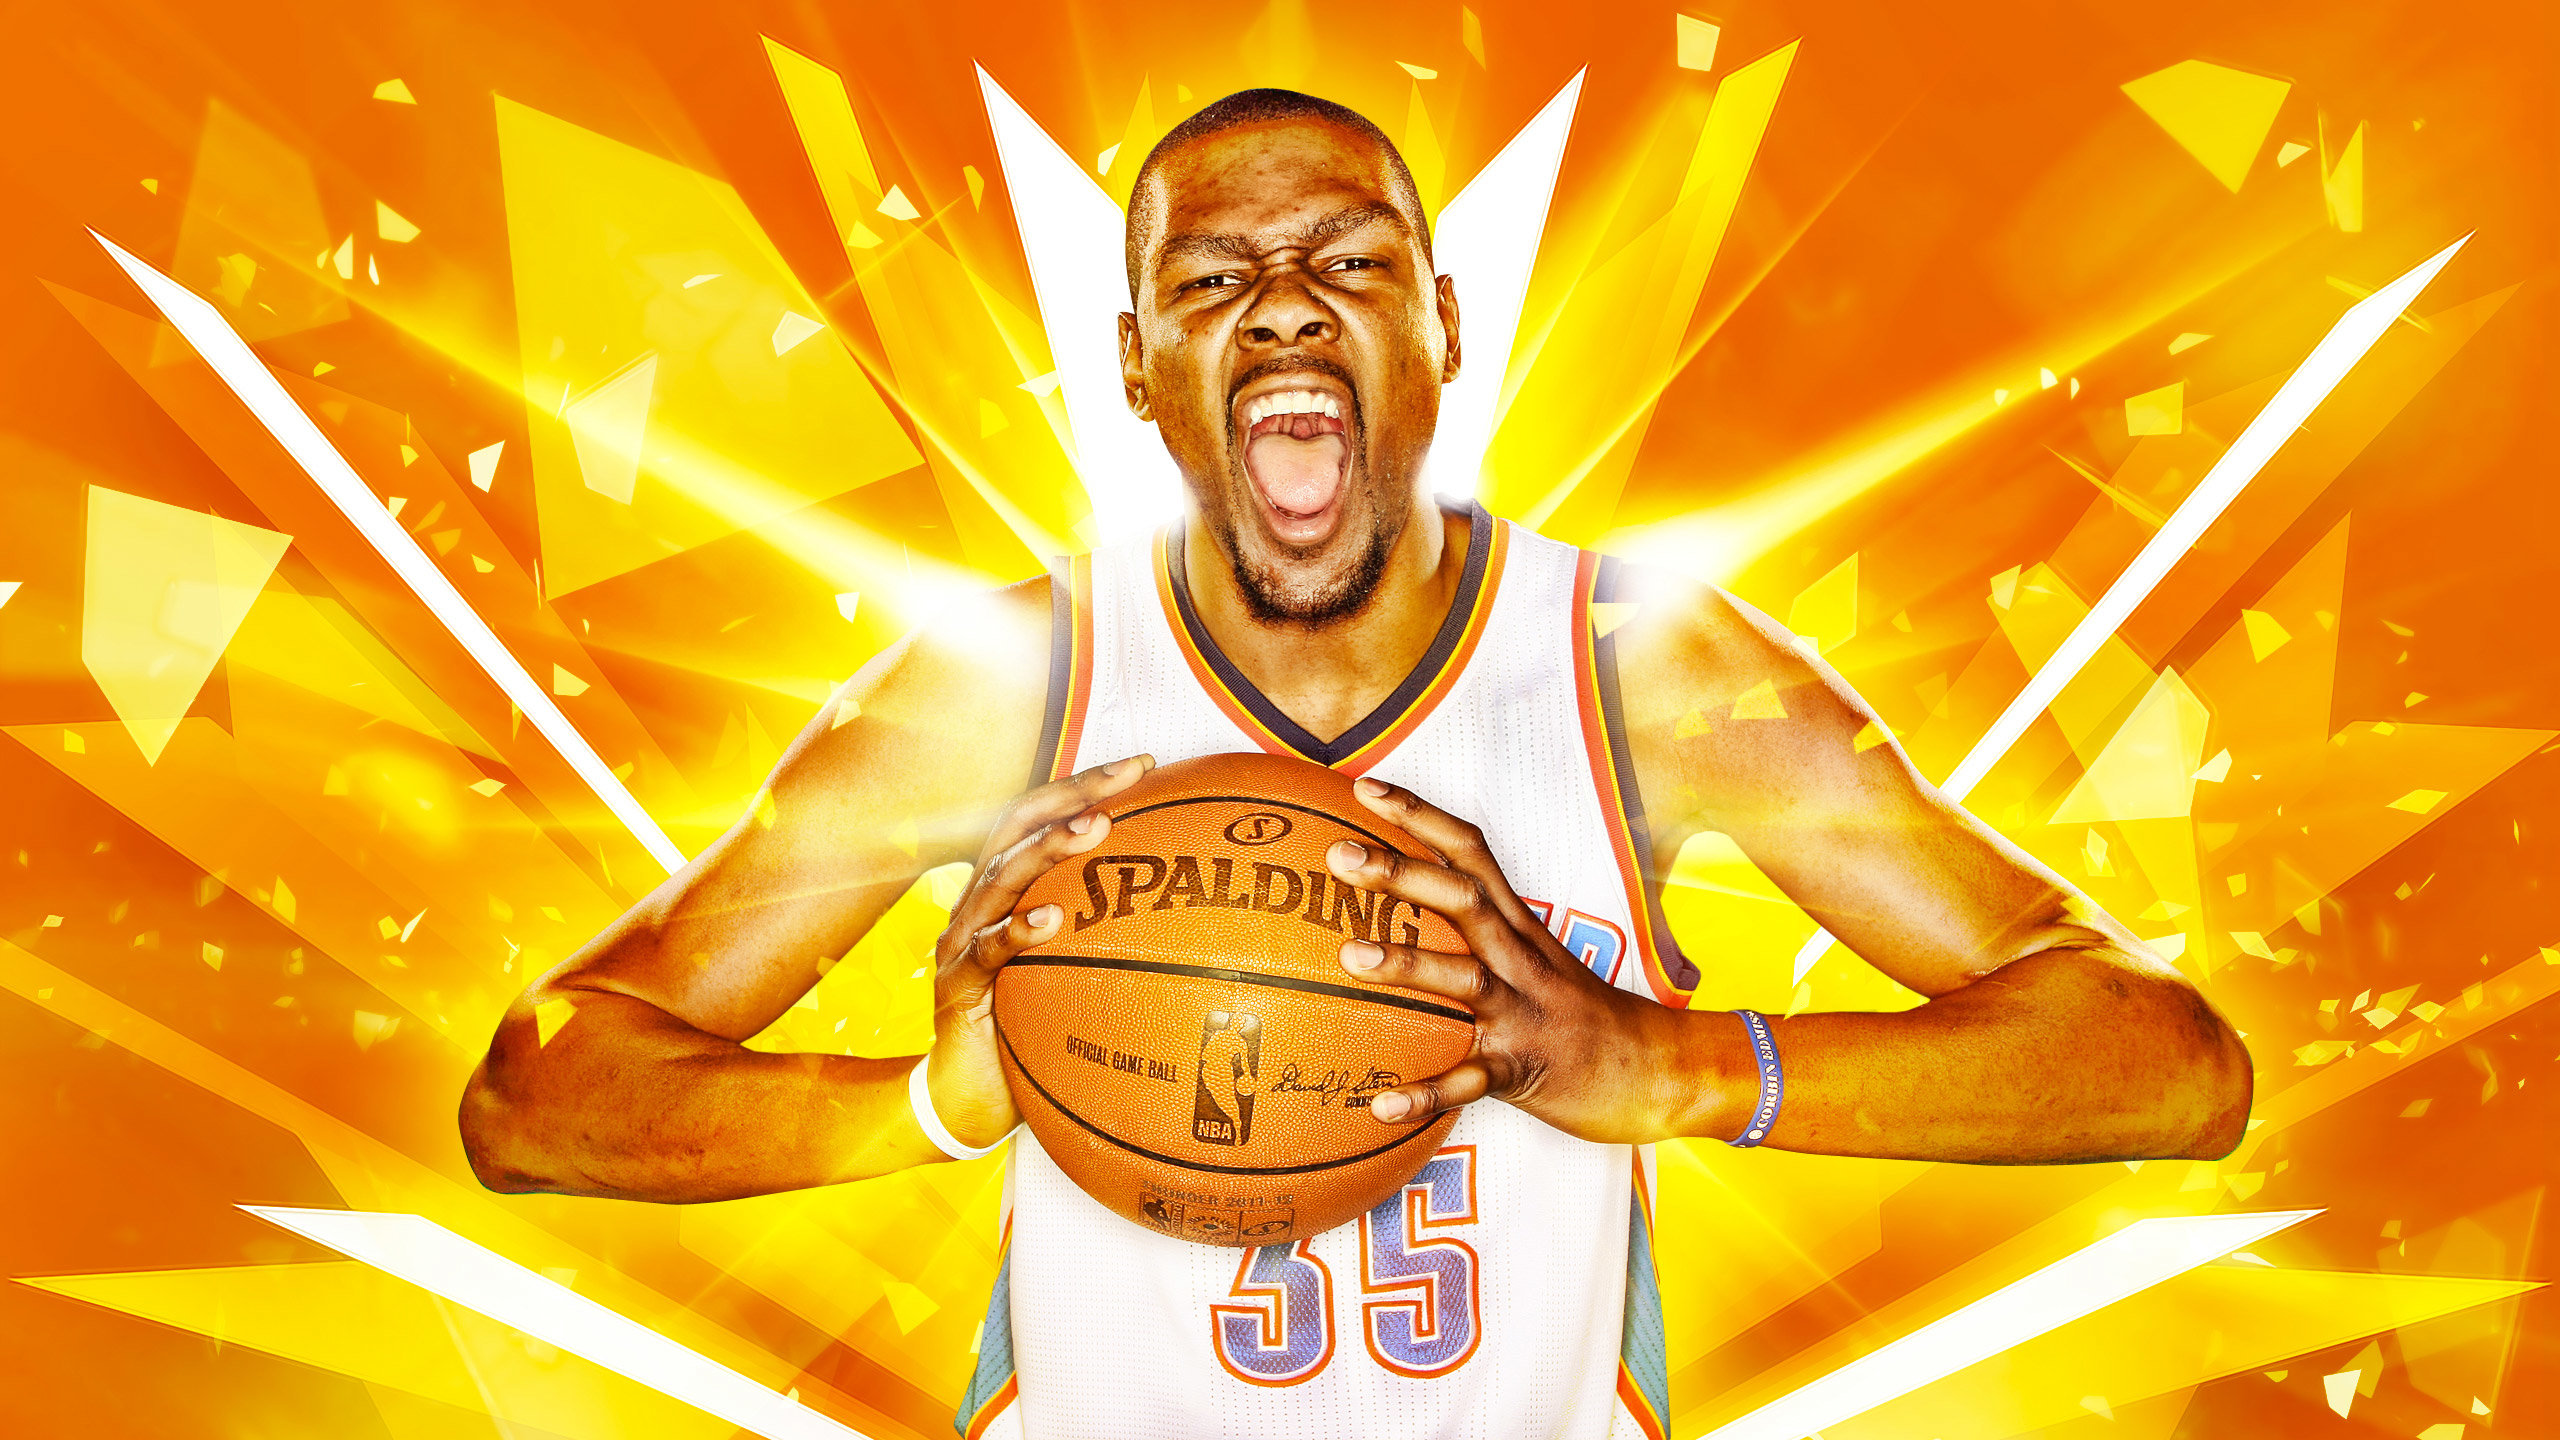 High resolution Kevin Durant hd 2560x1440 background ID:117131 for desktop